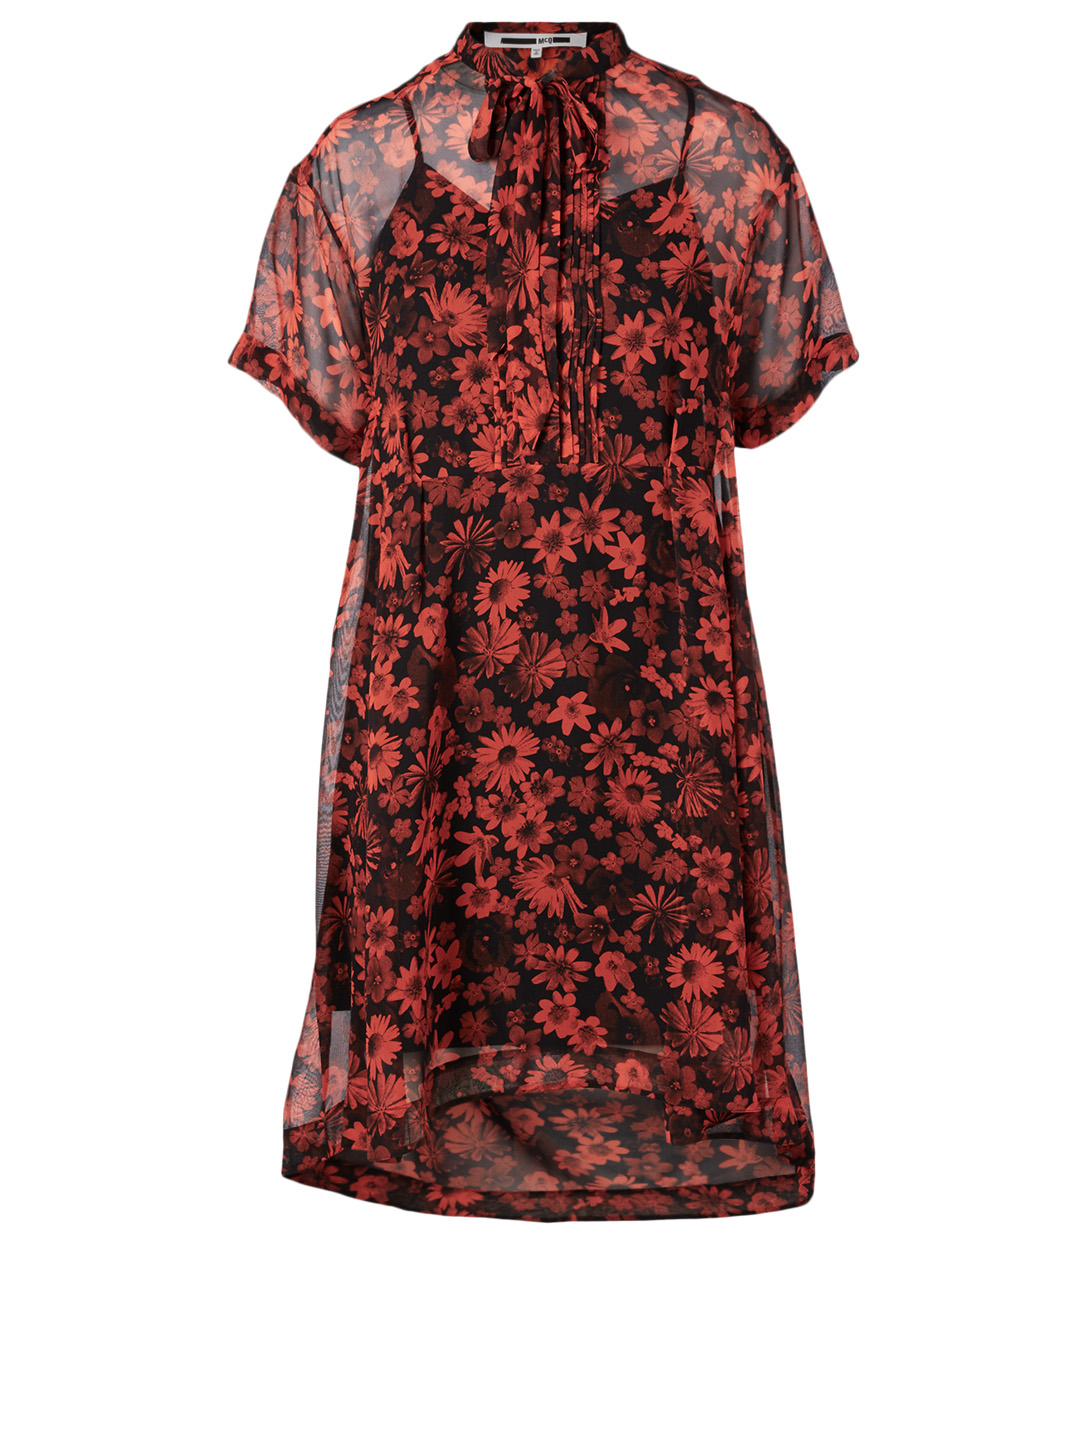 MCQ ALEXANDER MCQUEEN Silk Short-Sleeve Dress In Floral Print Women's Multi